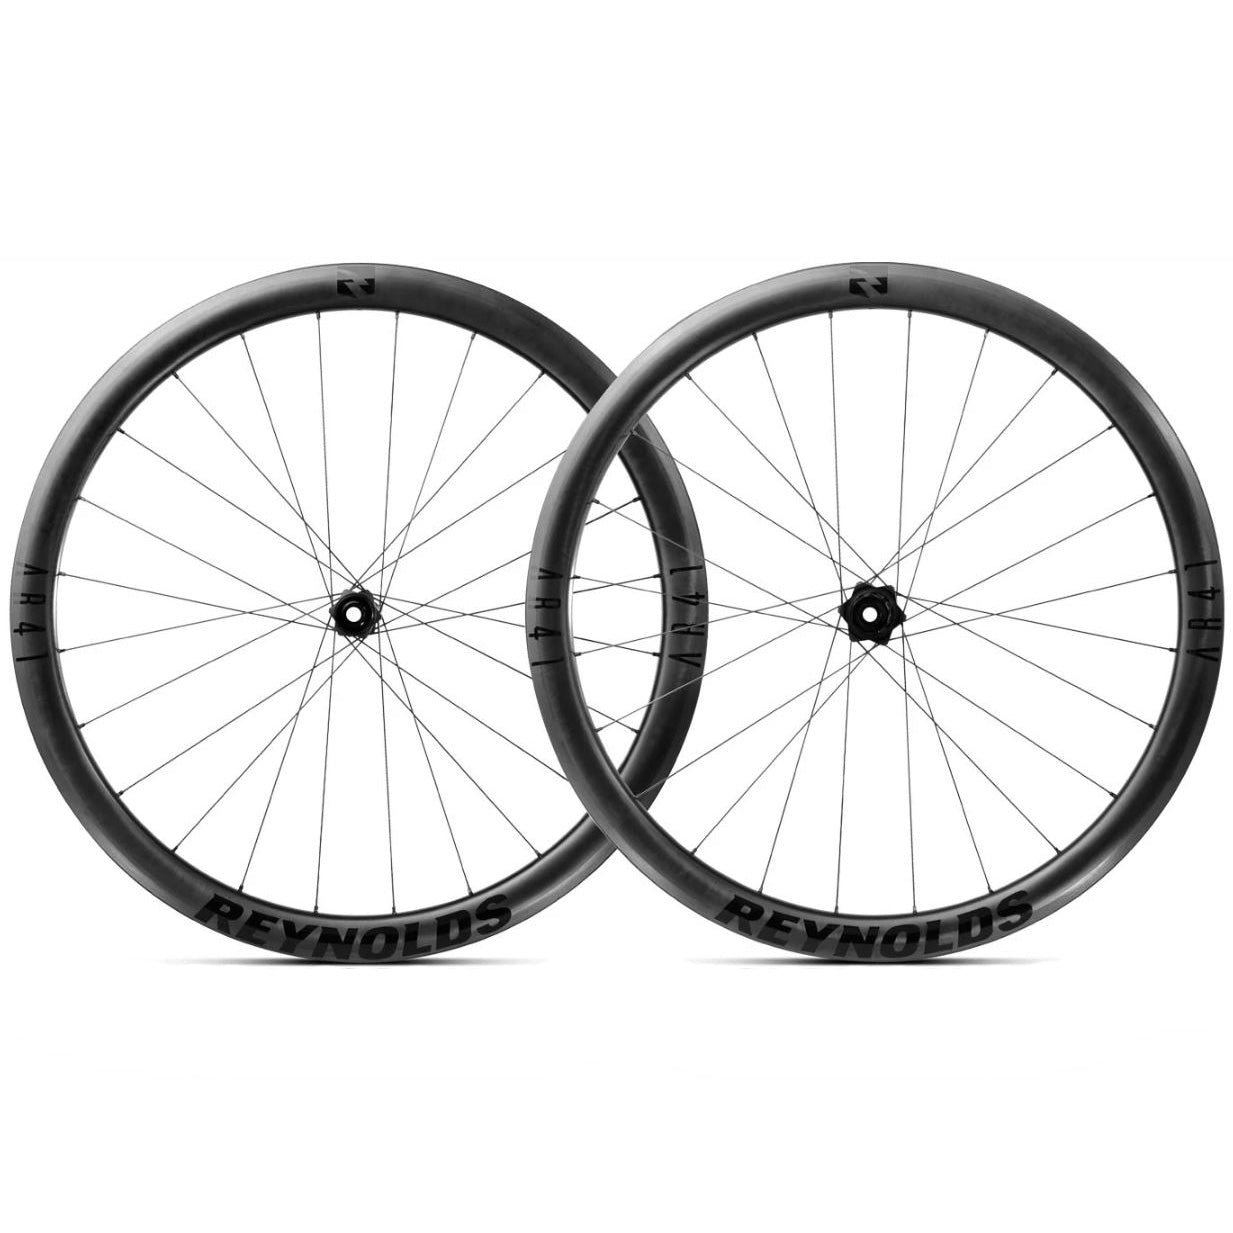 Reynolds Cycling AR41 Wheelset